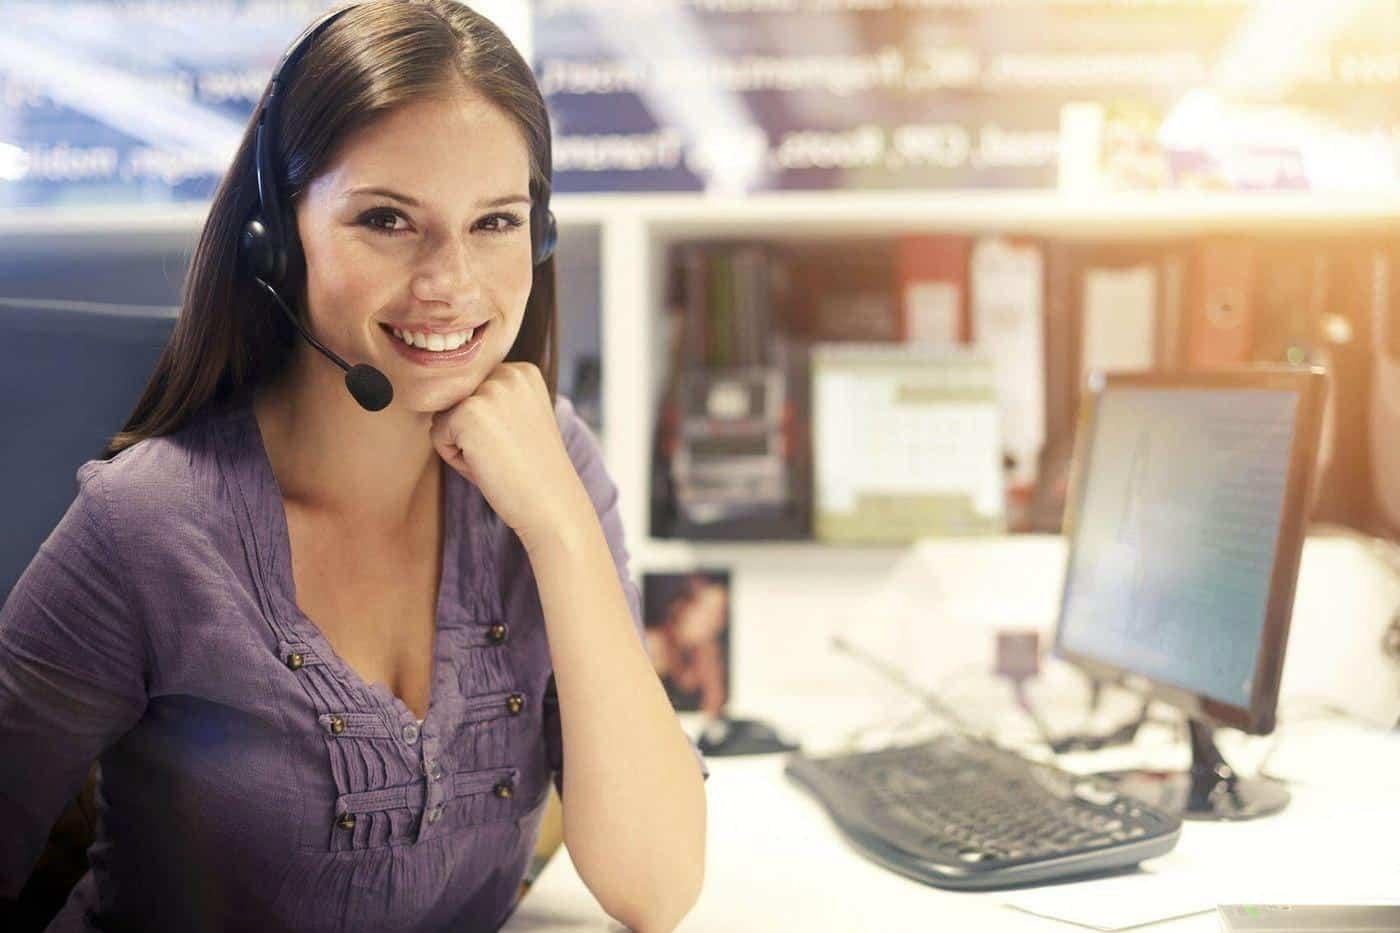 virtual receptionist answering